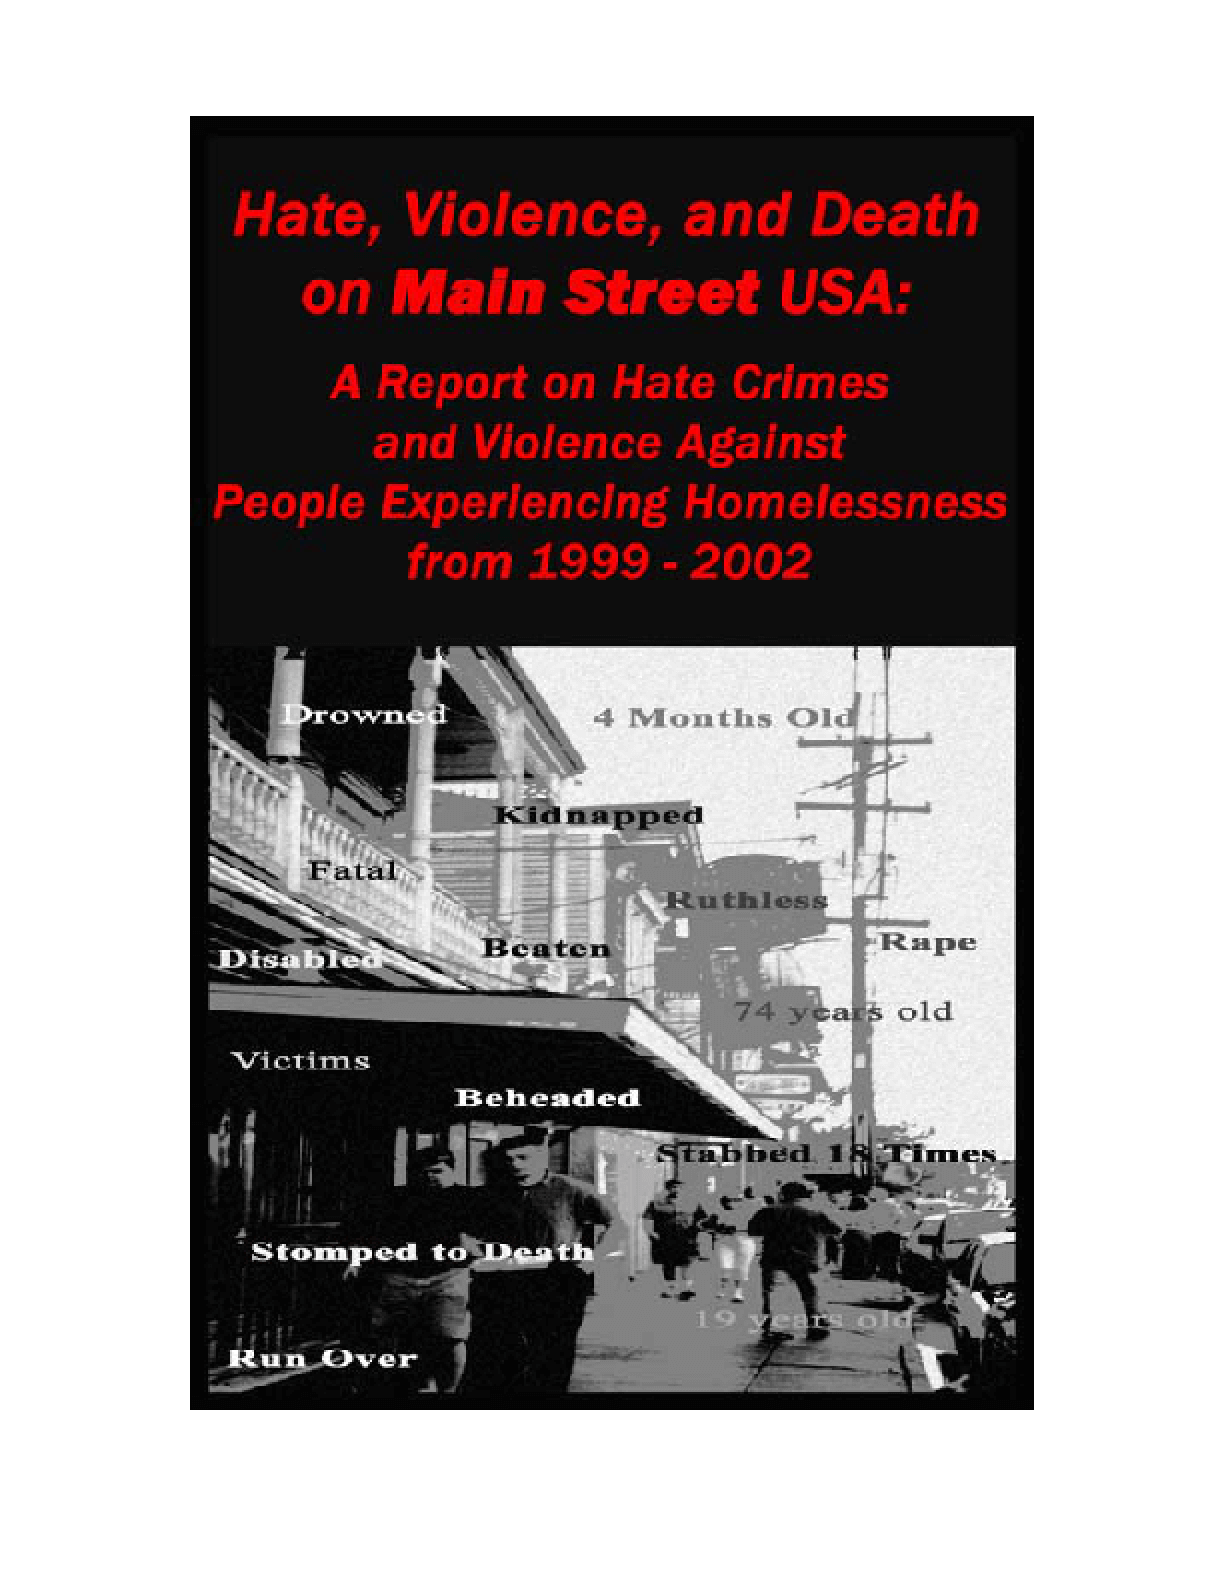 Hate Crimes and Violence Against People Experiencing Homelessness 1999 - 2002